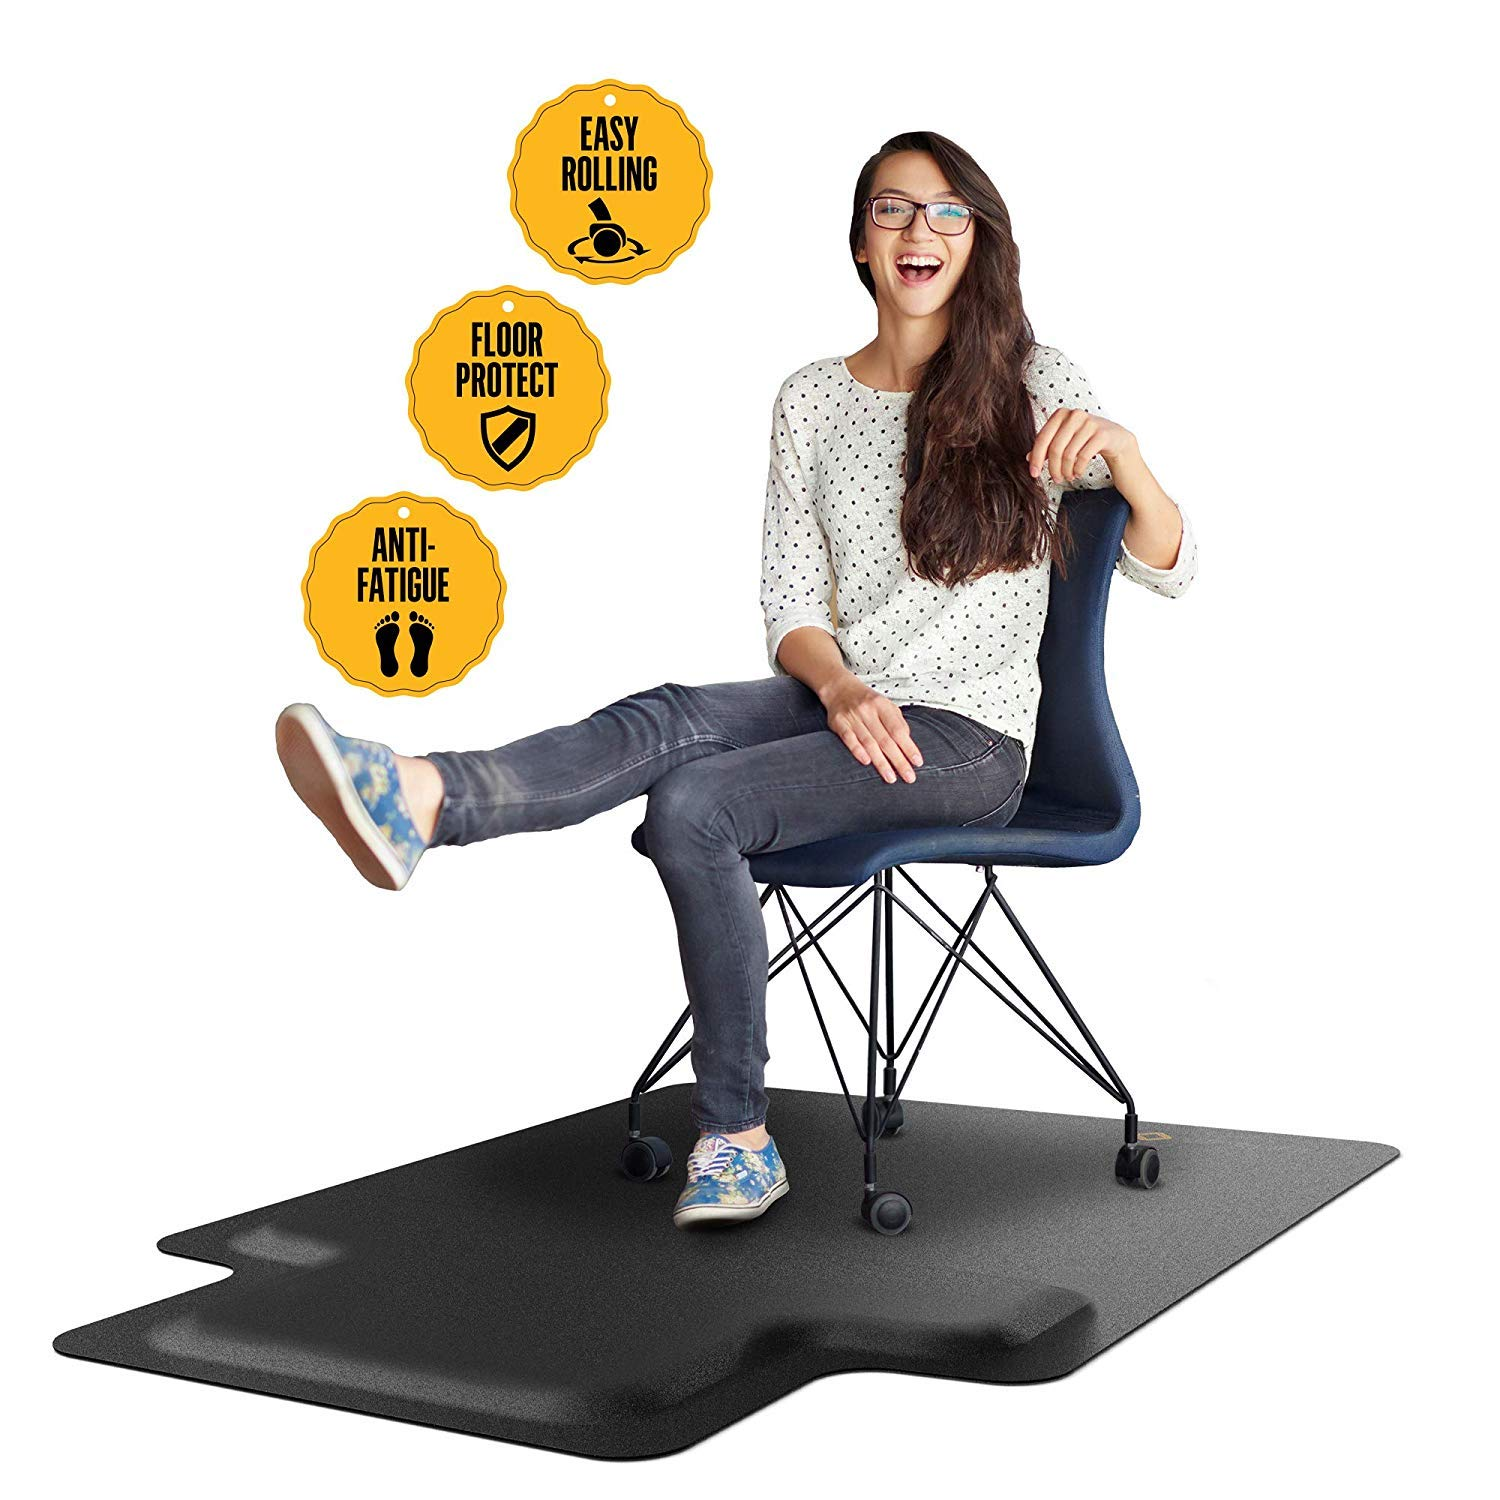 Office Chair Mat with Anti Fatigue Cushioned Foam - Chair Mat for Harwood Floor with Foot Rest Under Desk - 2 in 1 Chairmat Standing Desk Anti-Fatigue Comfort Mat by Mushyn